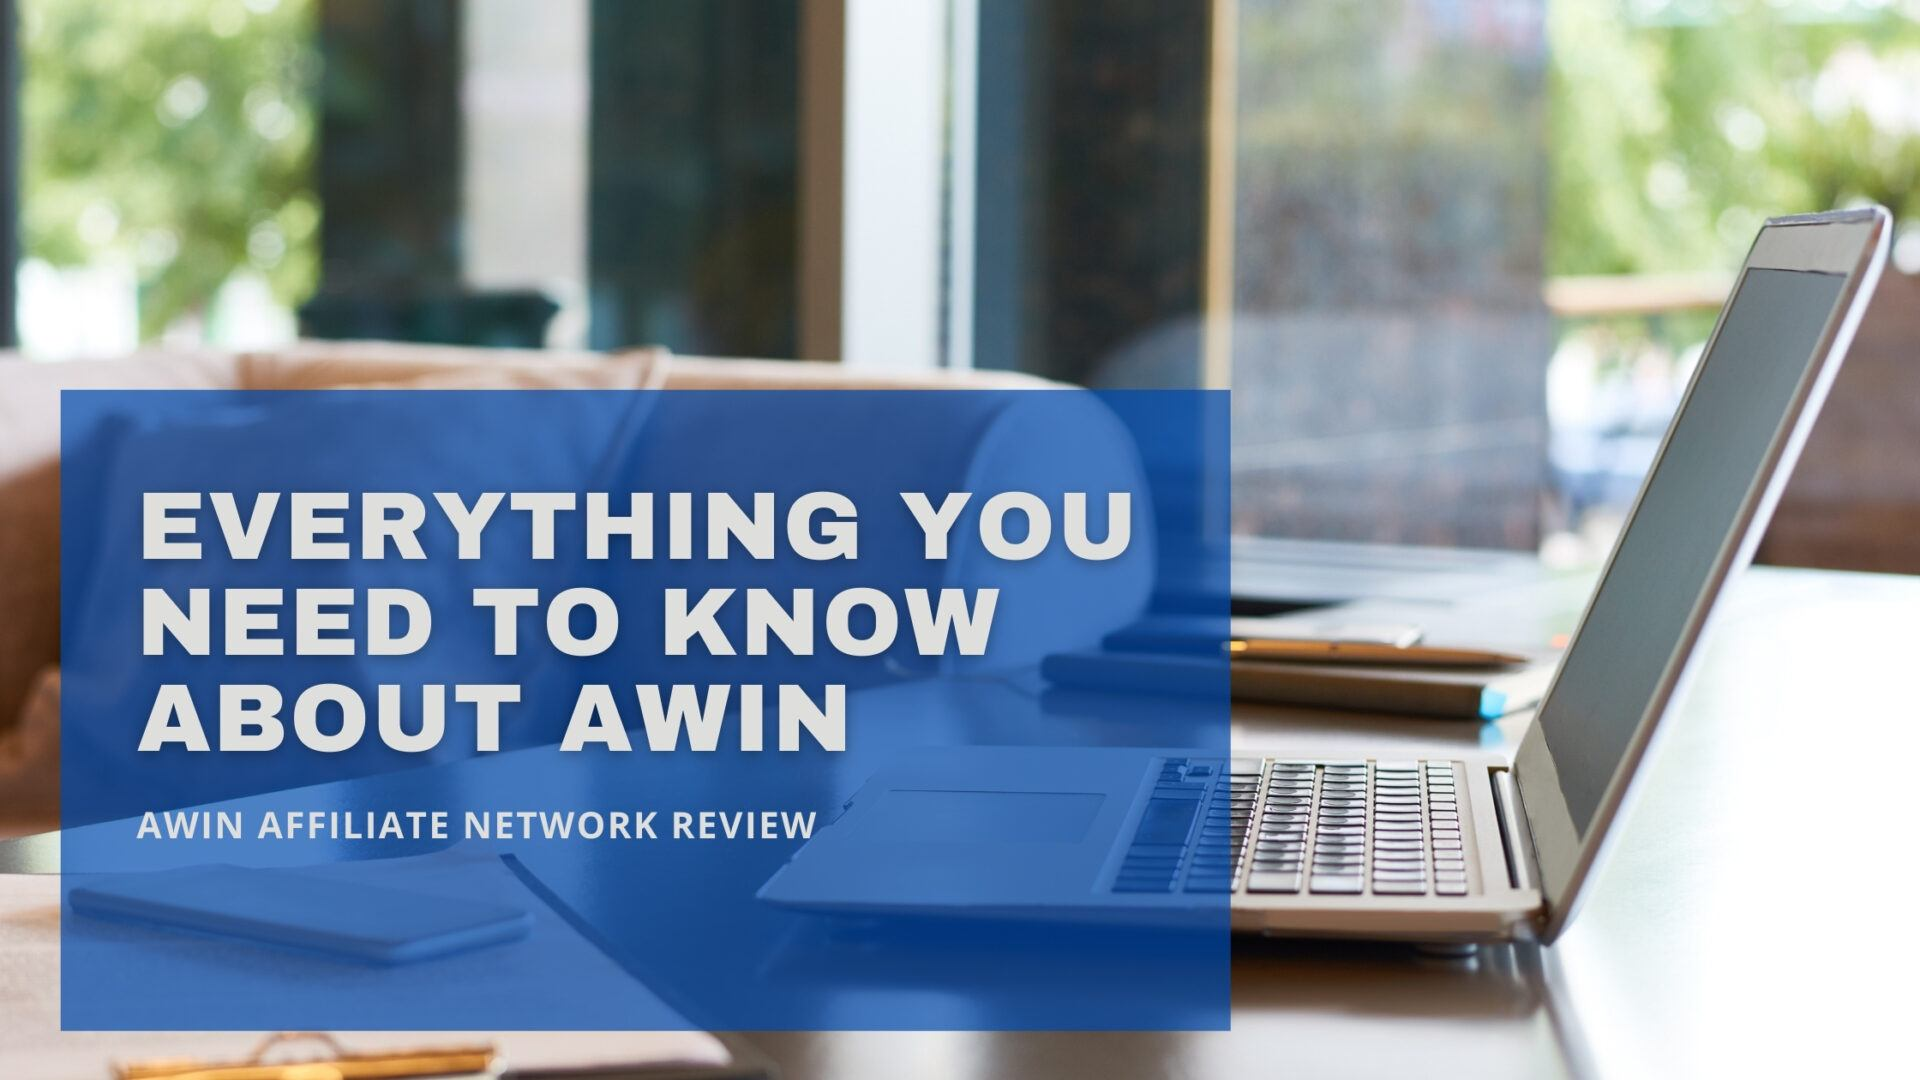 Everything You Need to Know About Awin